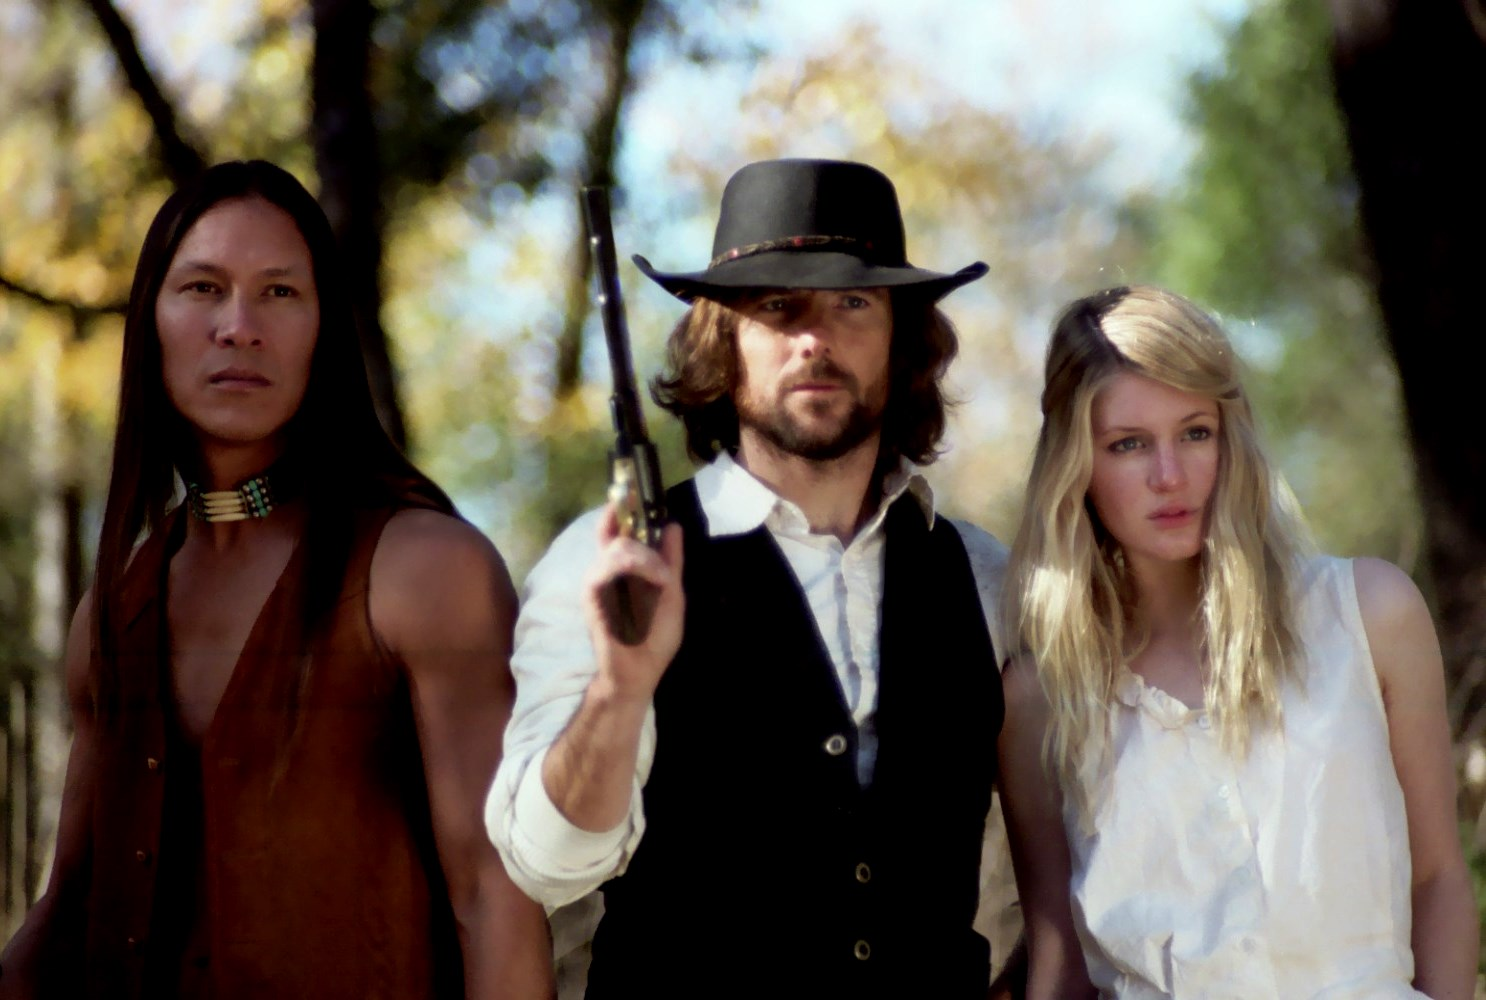 Brother Wolf (Rick Mora), Mortimer (David Lockhart) and Rhianna (Camille Montgomery) in The Dead and the Damned (2010)